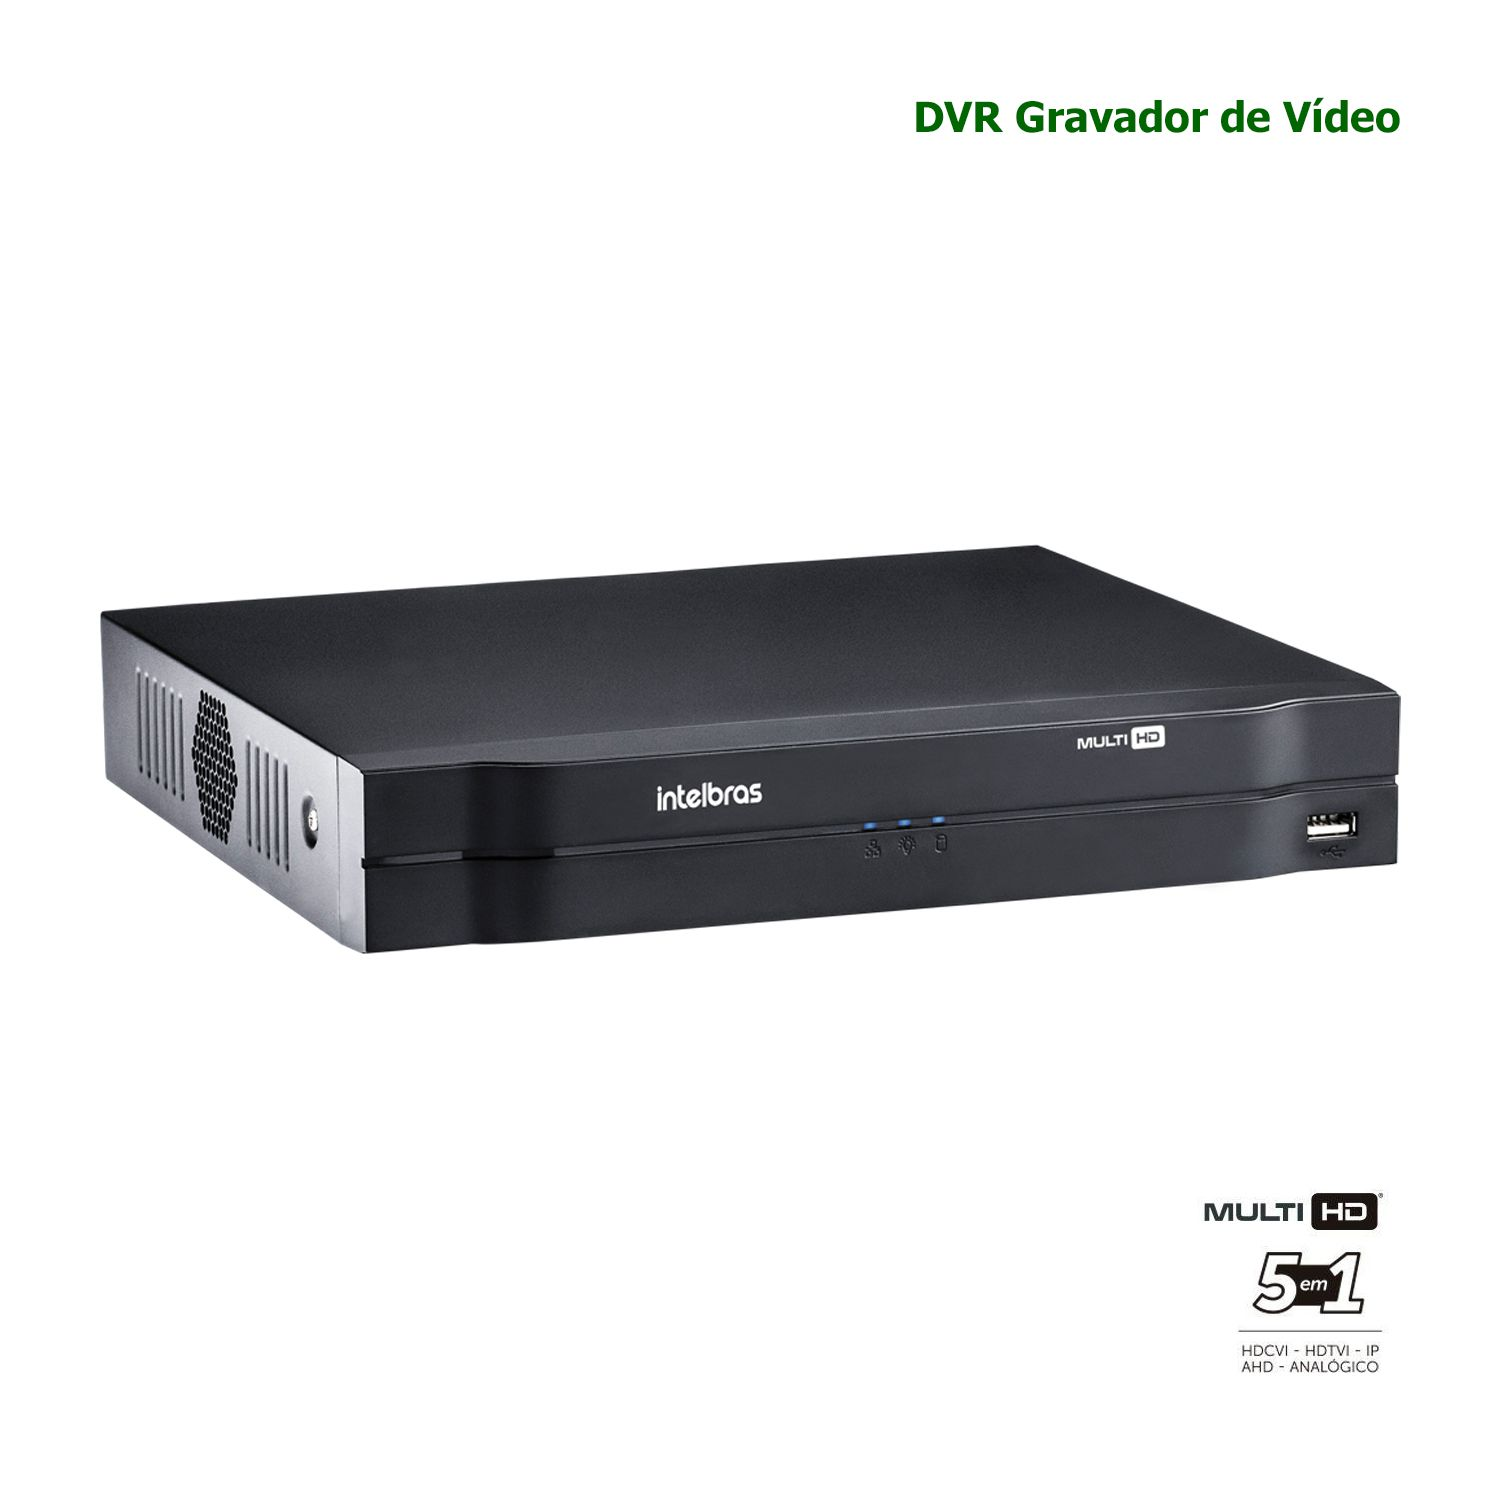 DVR Gravador Digital Vídeo Intelbras Multi HD 16 Canais H.265 MHDX 1116